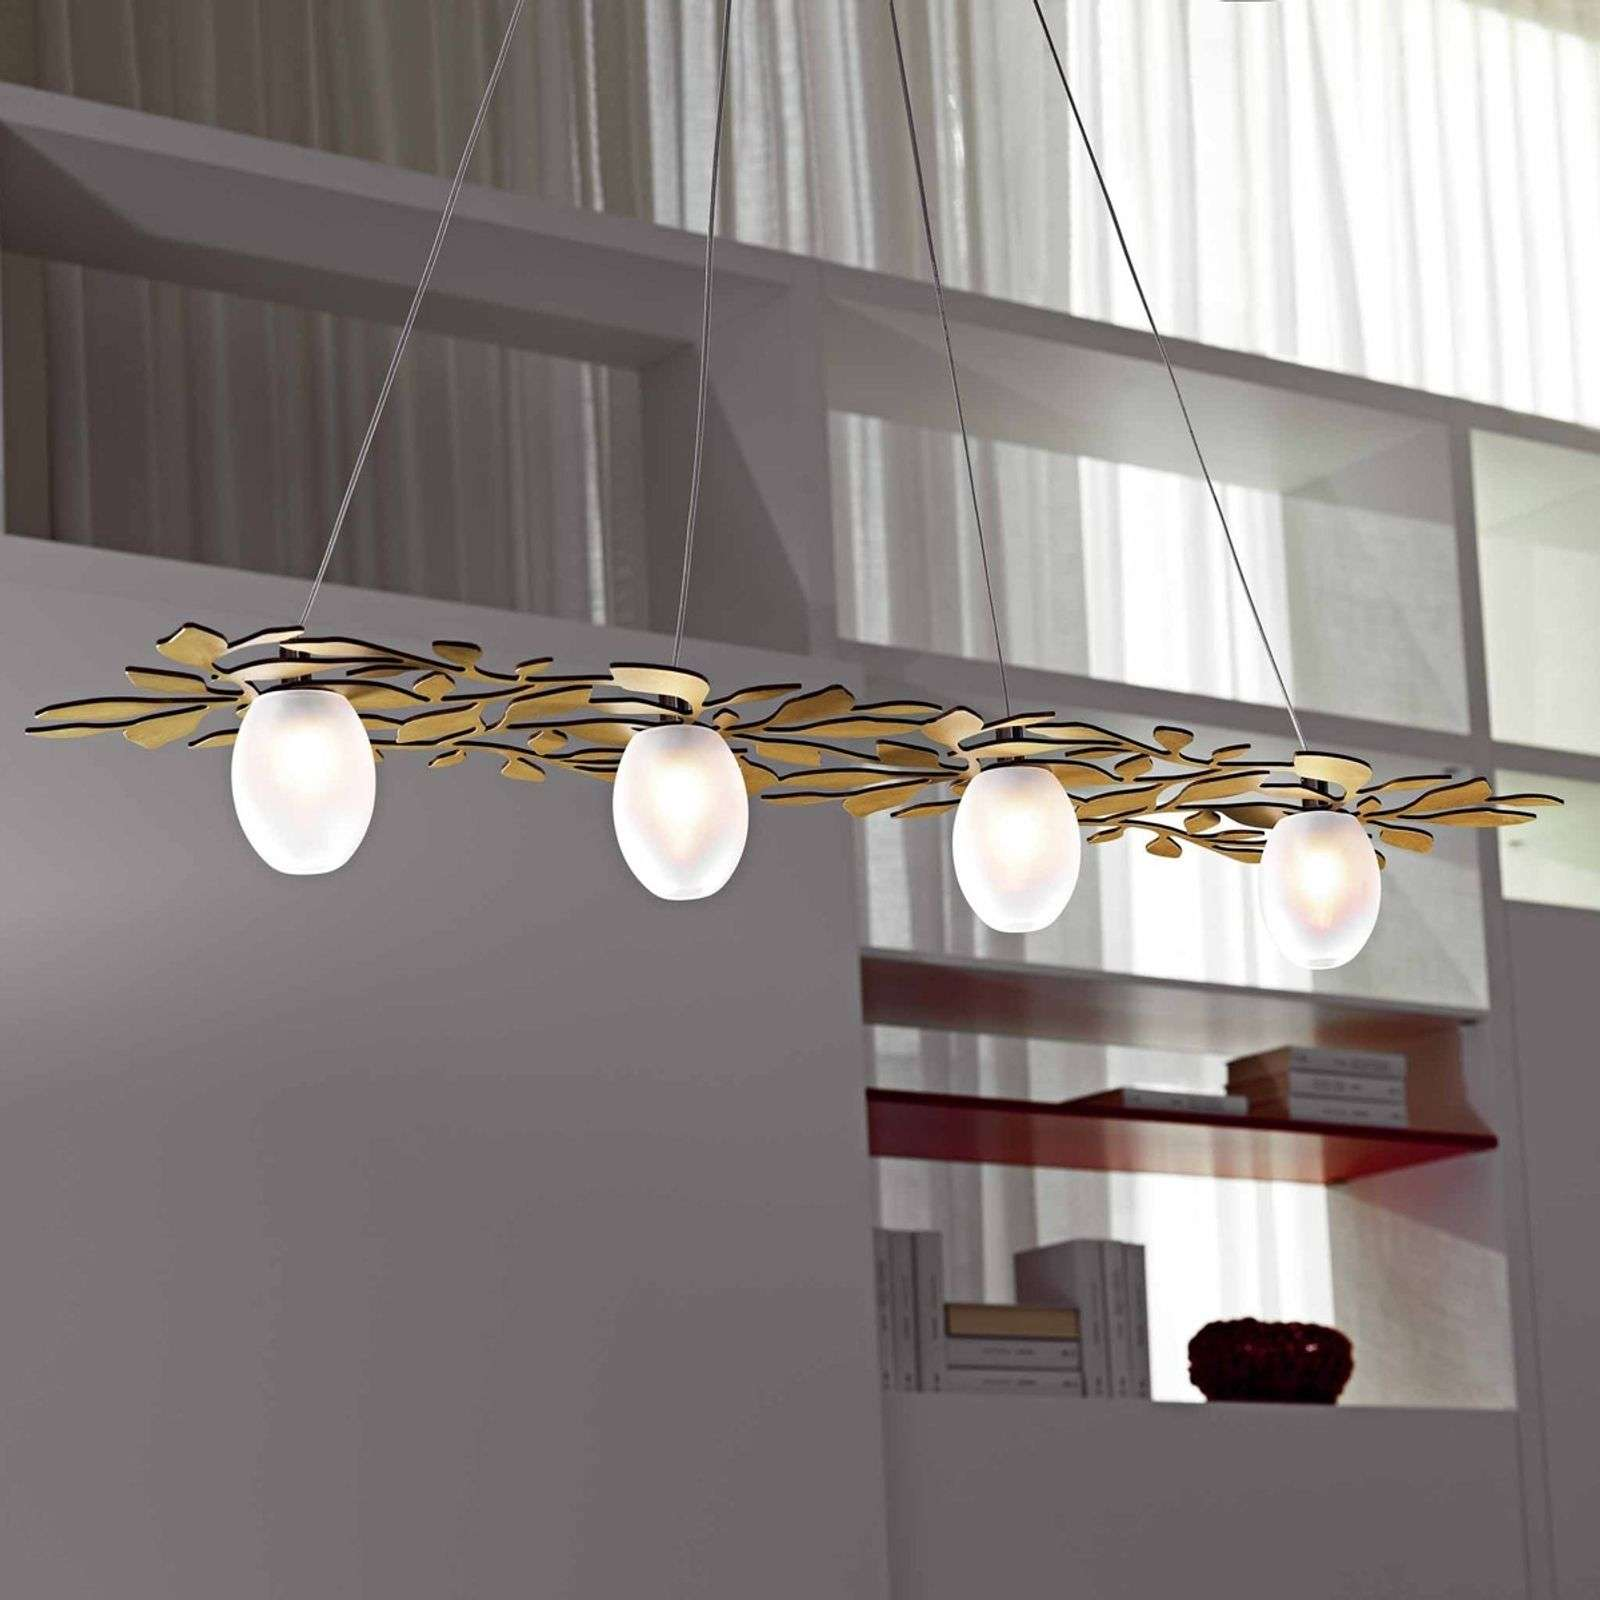 Suspension nature Arbos à 4 lampes doré antique